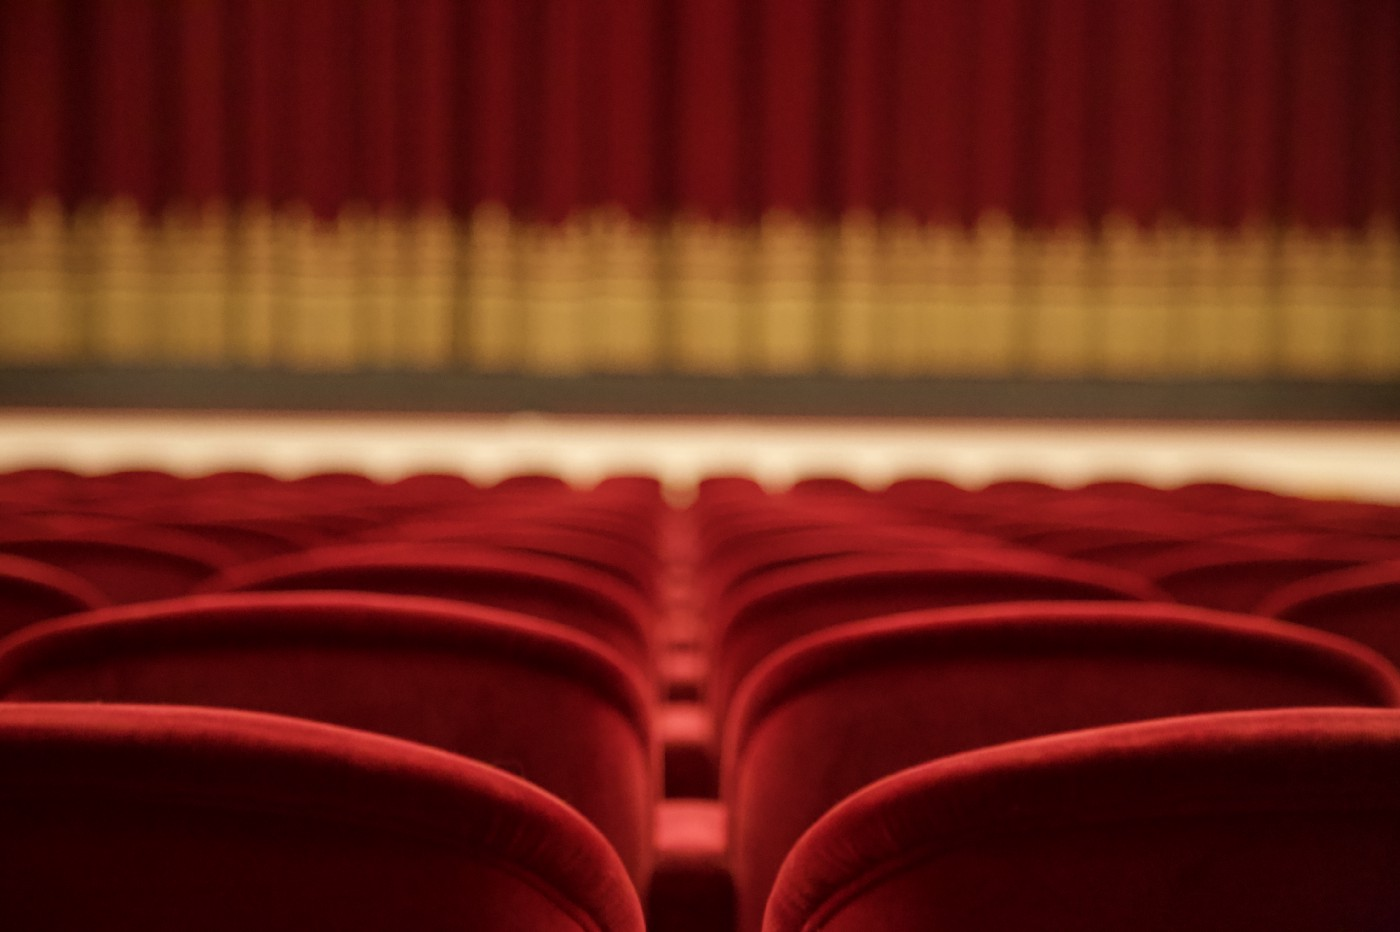 A theater. Perspective from the audience. Rows of empty red velvet chairs and in the distance, a red curtain with gold trim.